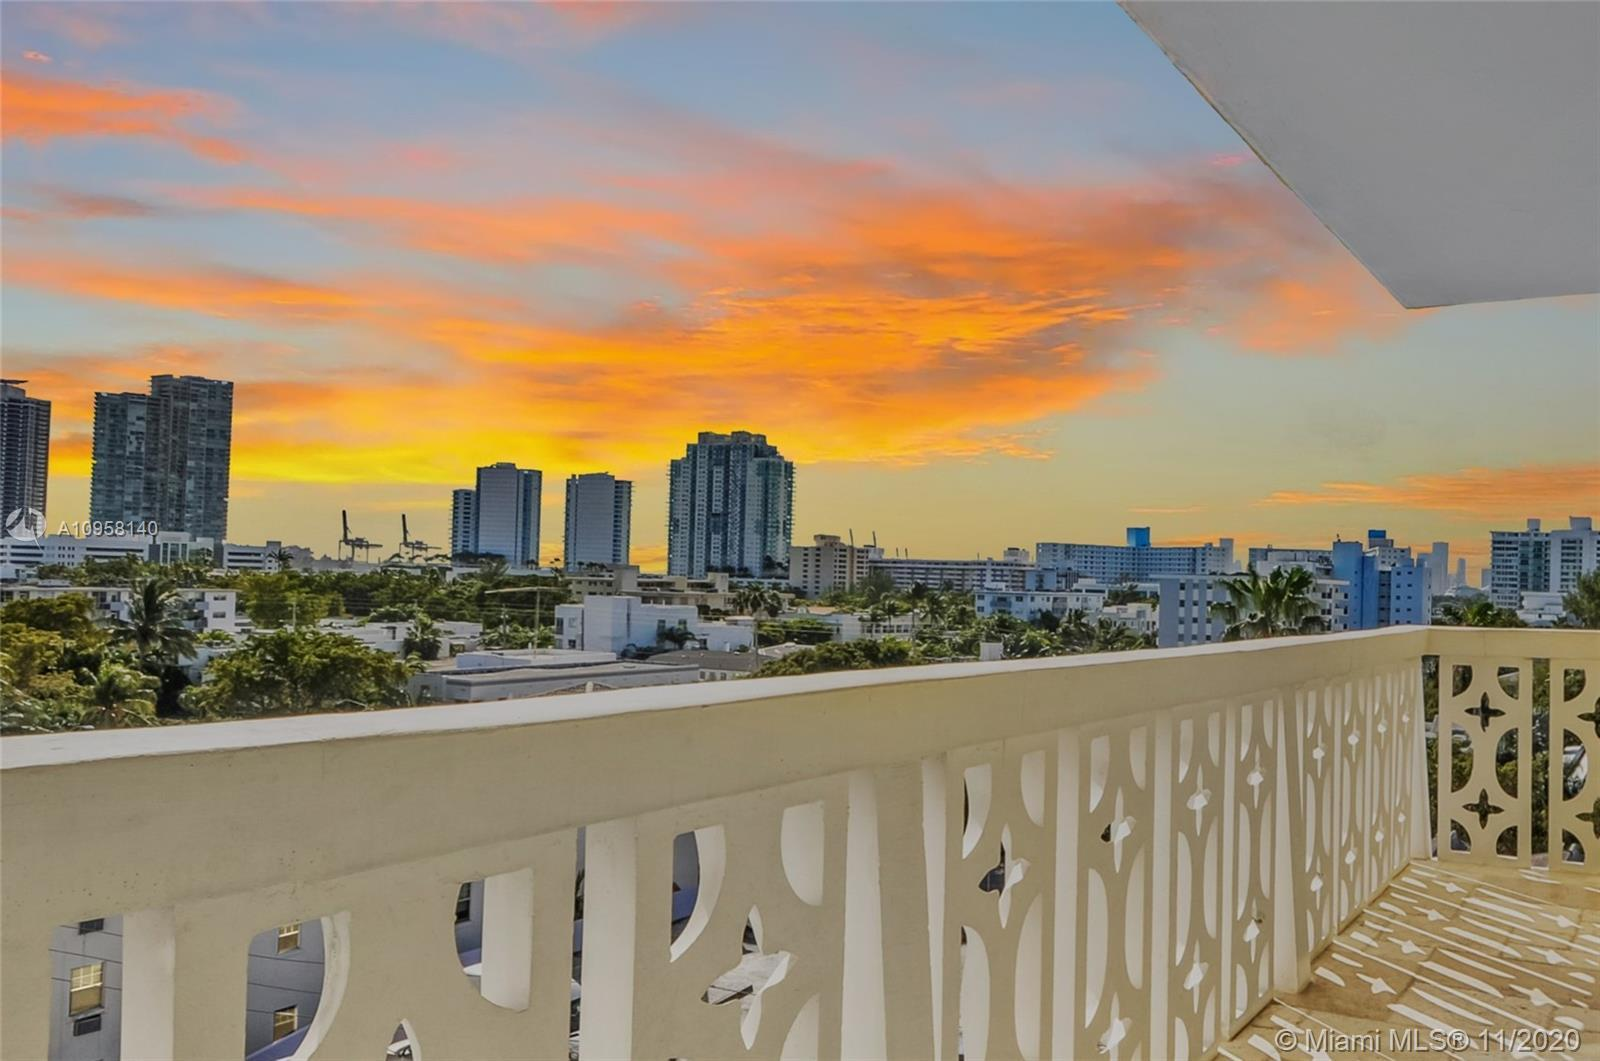 ABSOLUTELY FABULOUS! THIS SEVENTH FLOOR UNIT HAS STUNNING UNOBSTRUCTED VIEWS OF MIAMI BEACH AND DOWN